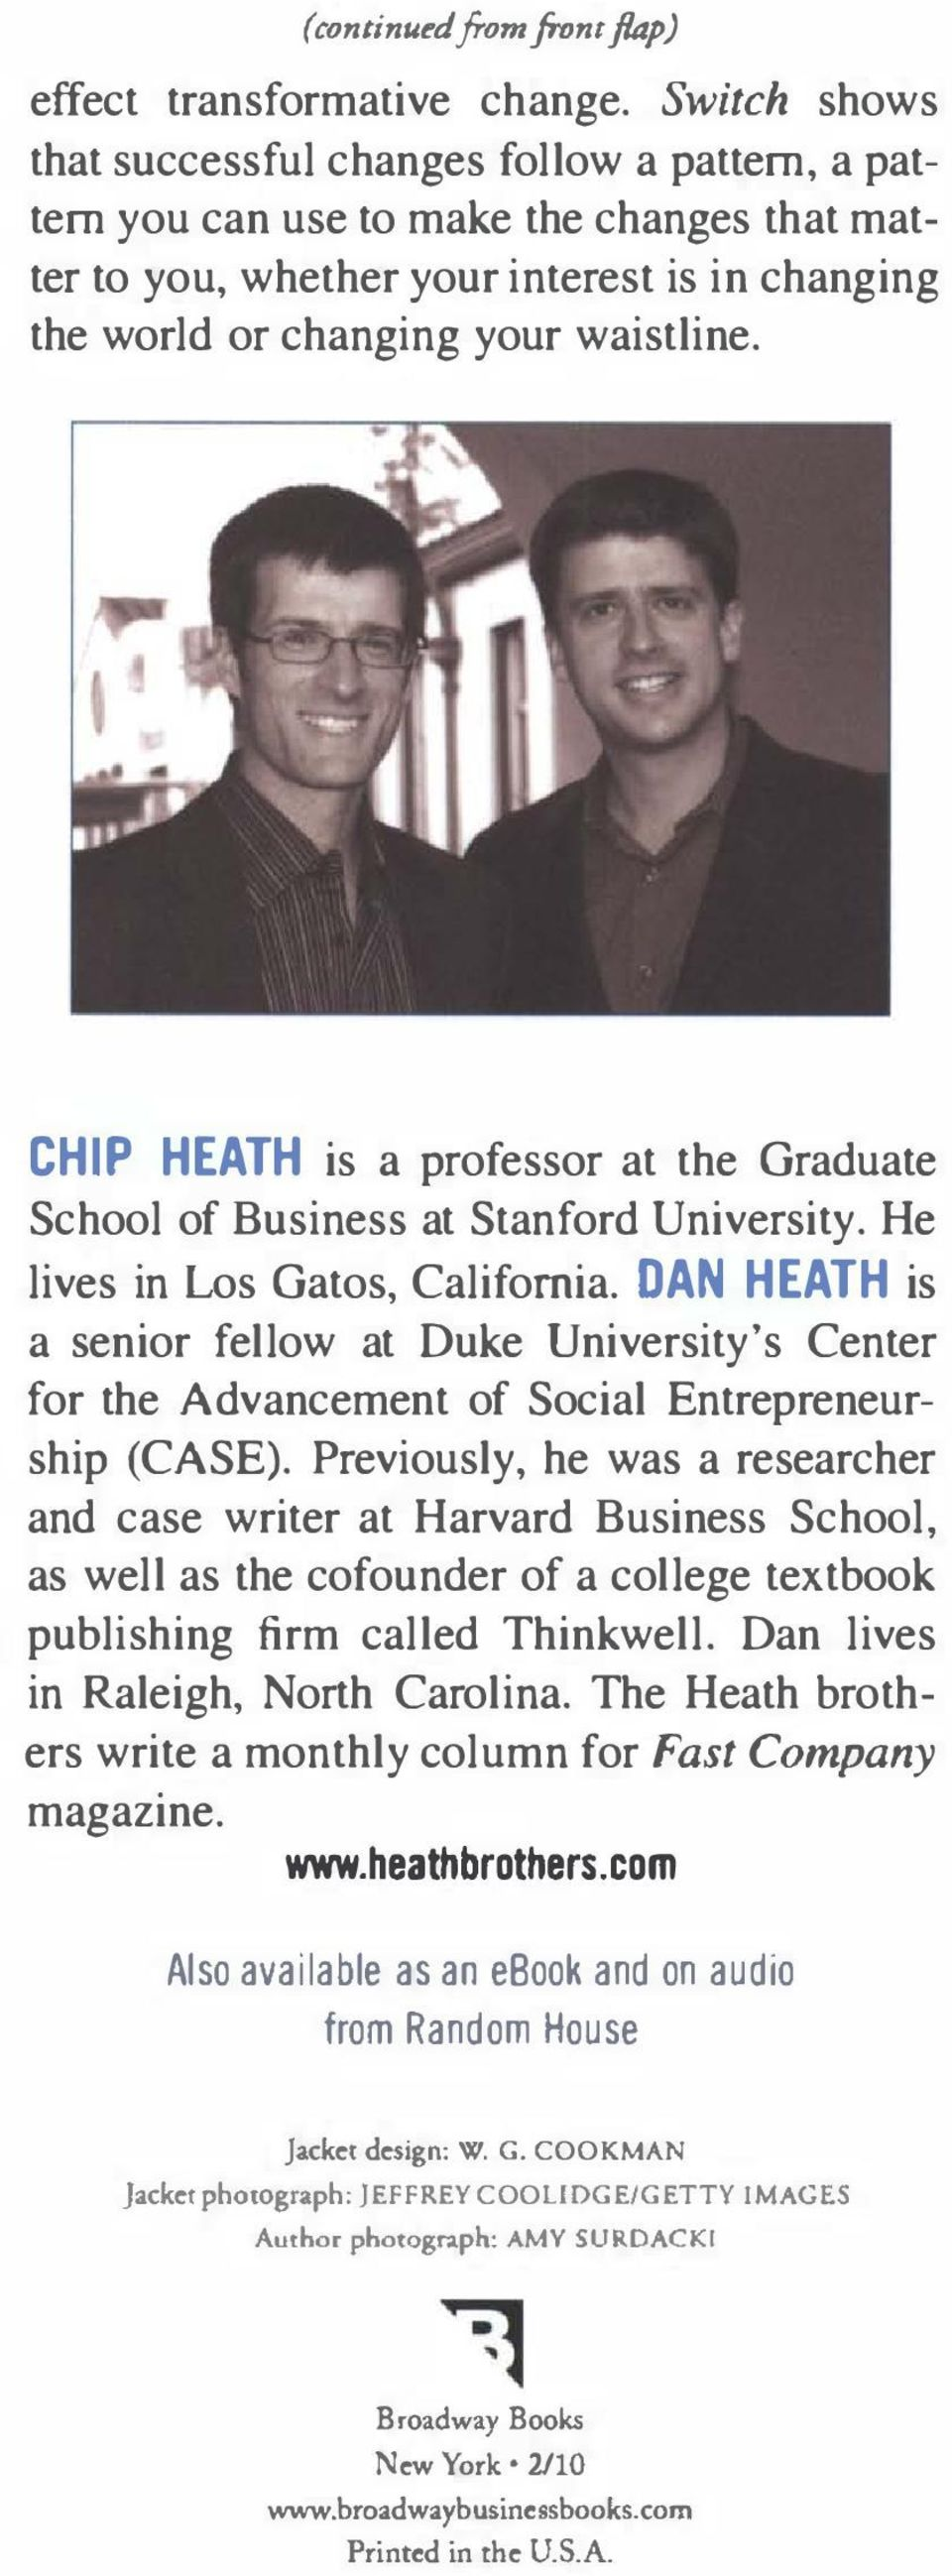 CHIP HEATH is a professor at the Graduate School of Business at Stanford University. He lives in Los Gatos, California.